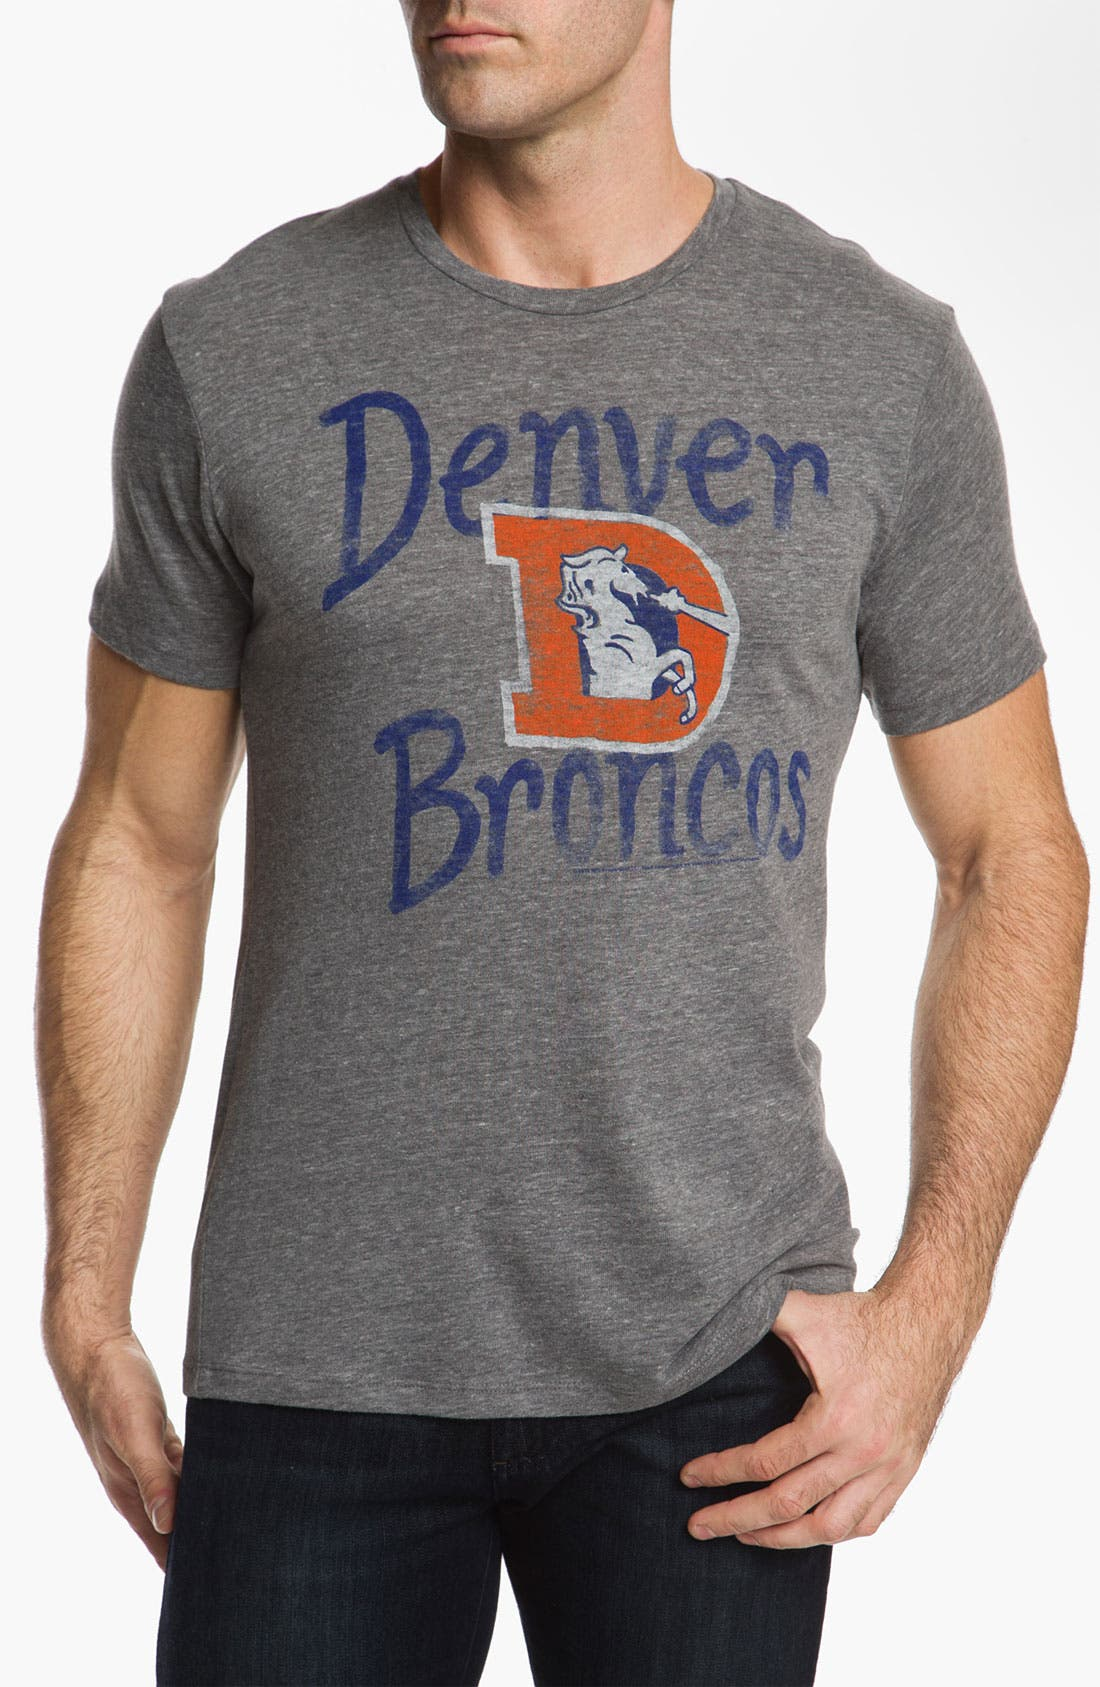 Alternate Image 1 Selected - Junk Food 'Denver Broncos' T-Shirt